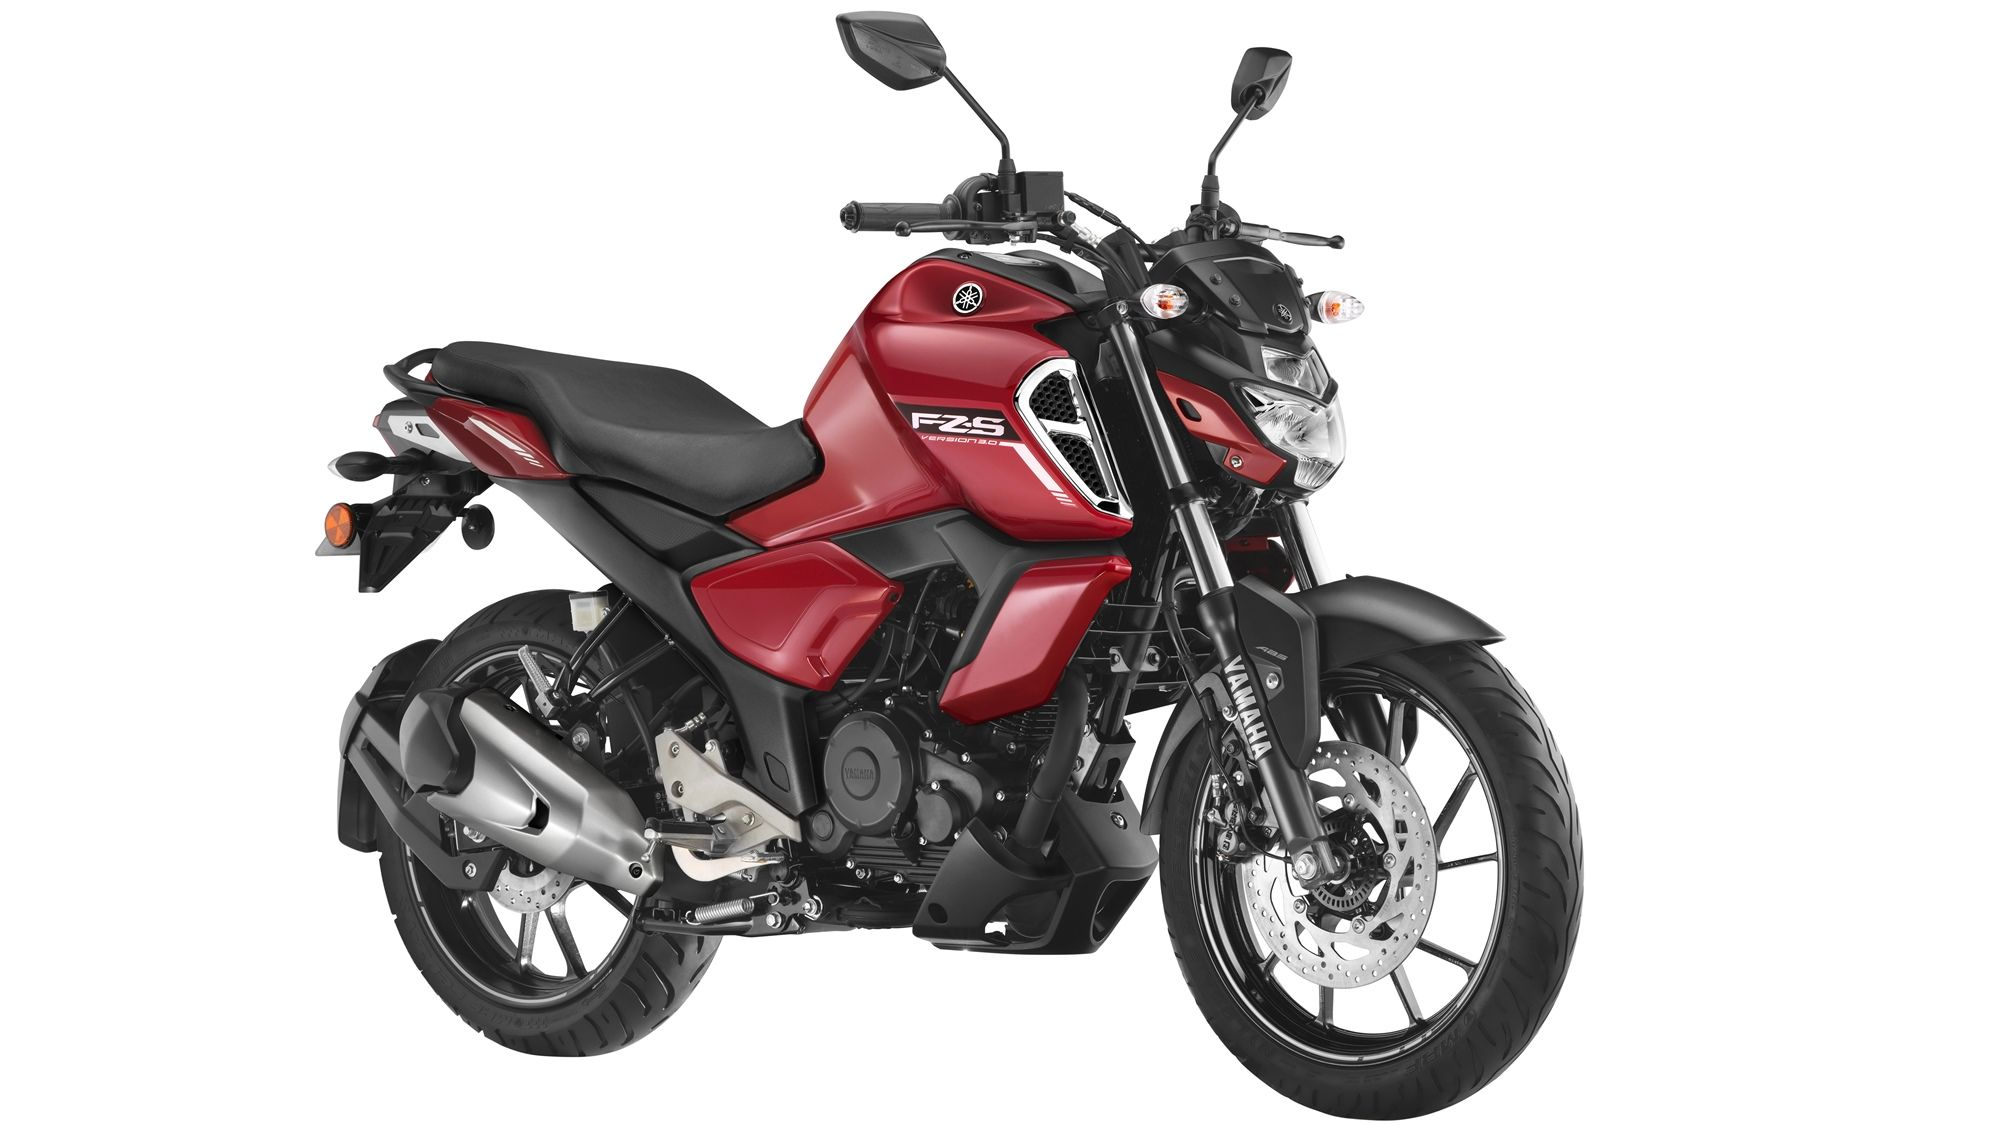 Yamaha Fz Fi Fzs Fi V3 Bs 6 Versions Launched Yamaha Fz